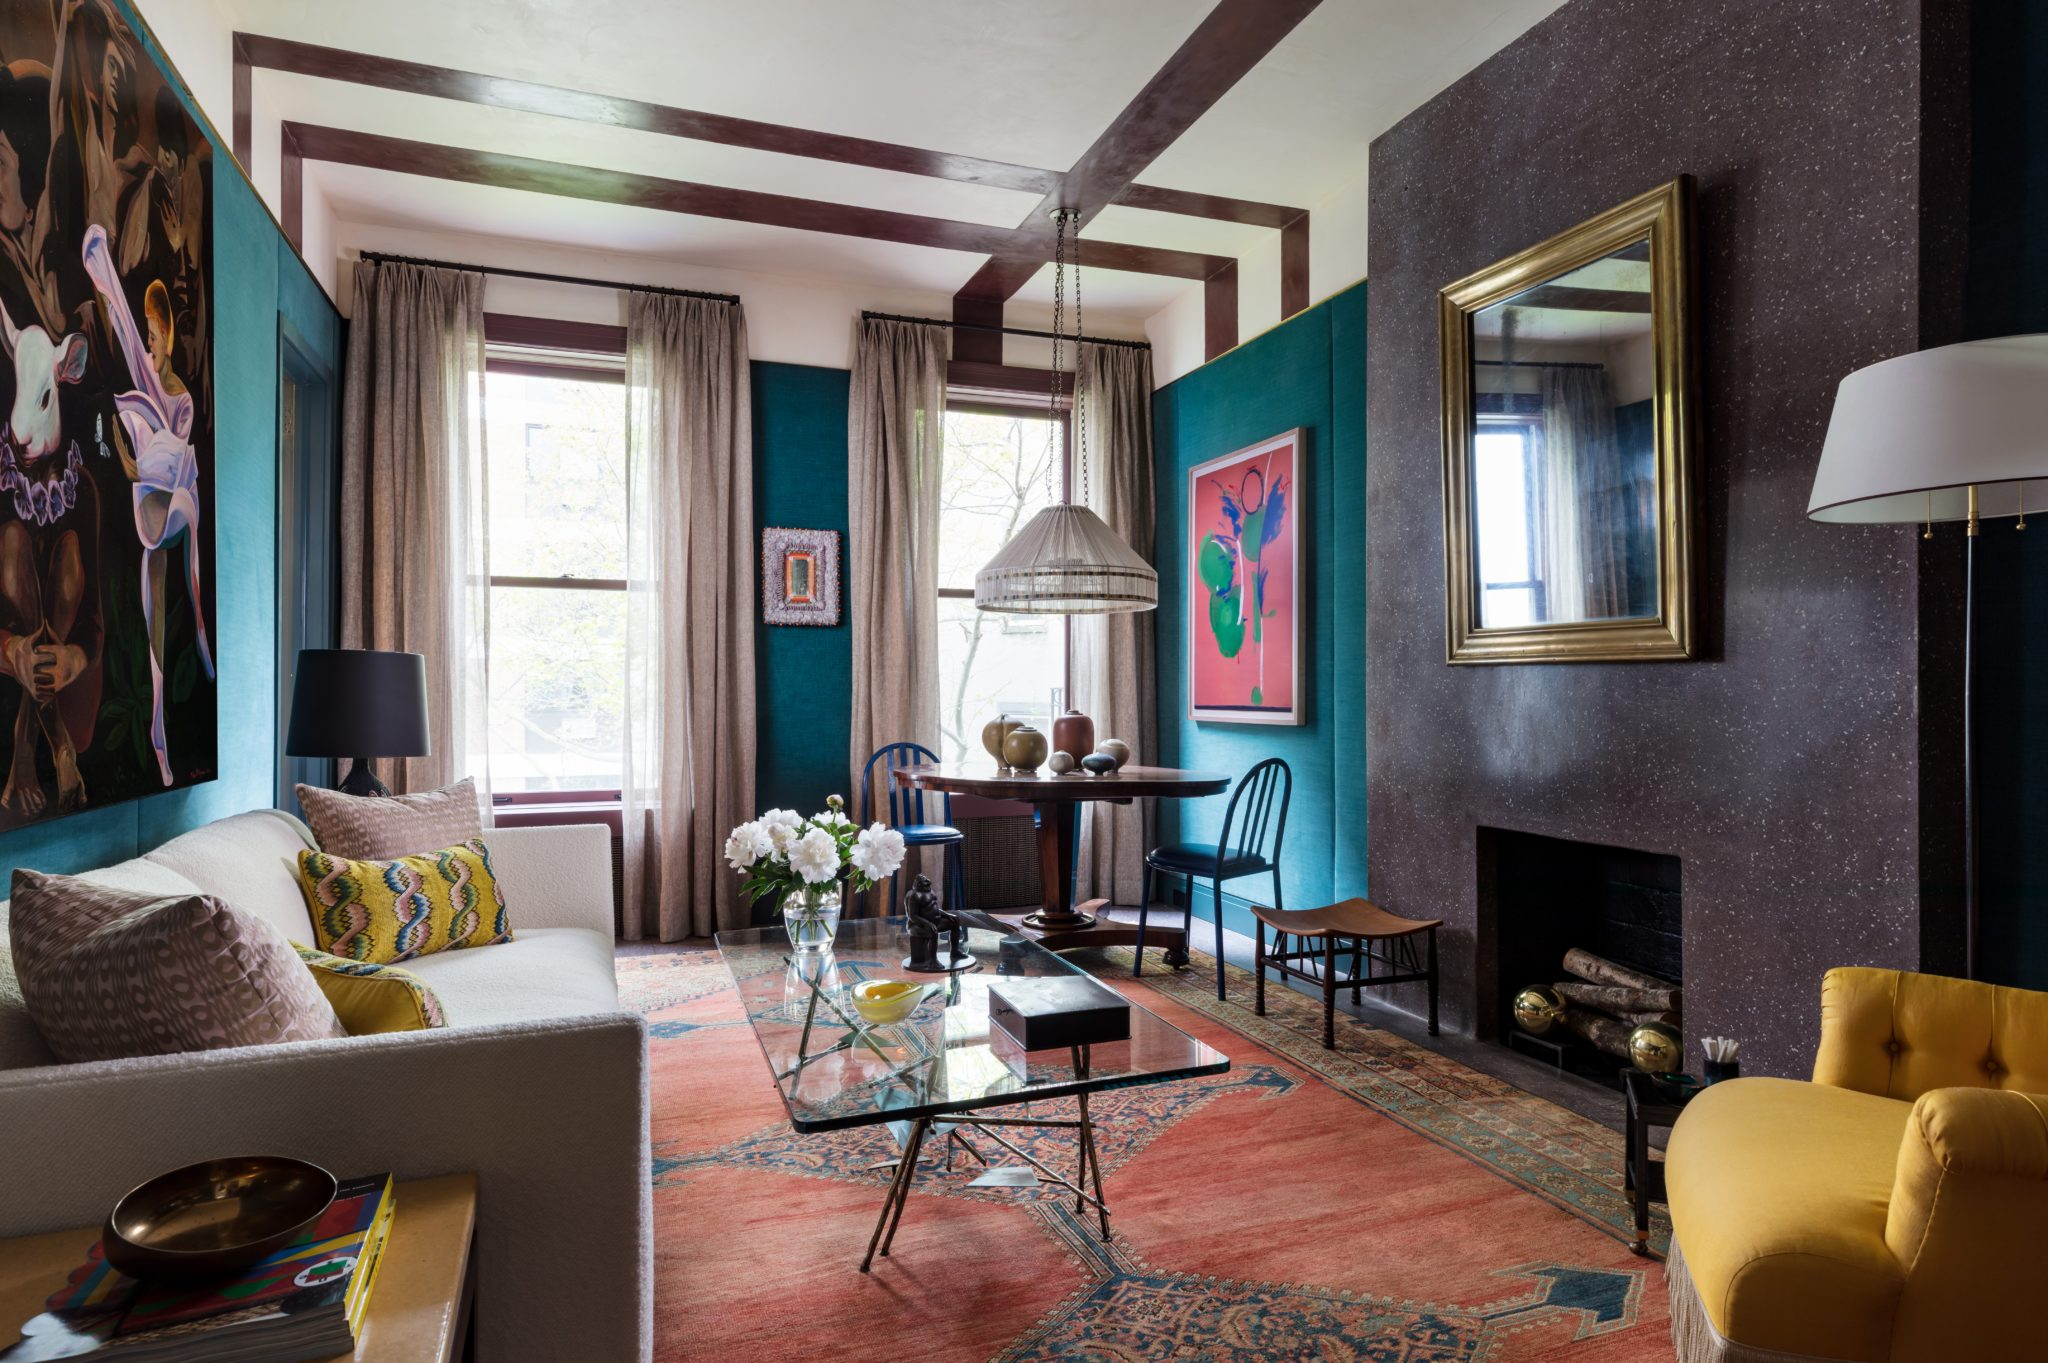 Influenced by the ease with which Italian interiors blend styles and periods,Pappas Mironlayered textures and contrasted colors and materials in this sitting room design.